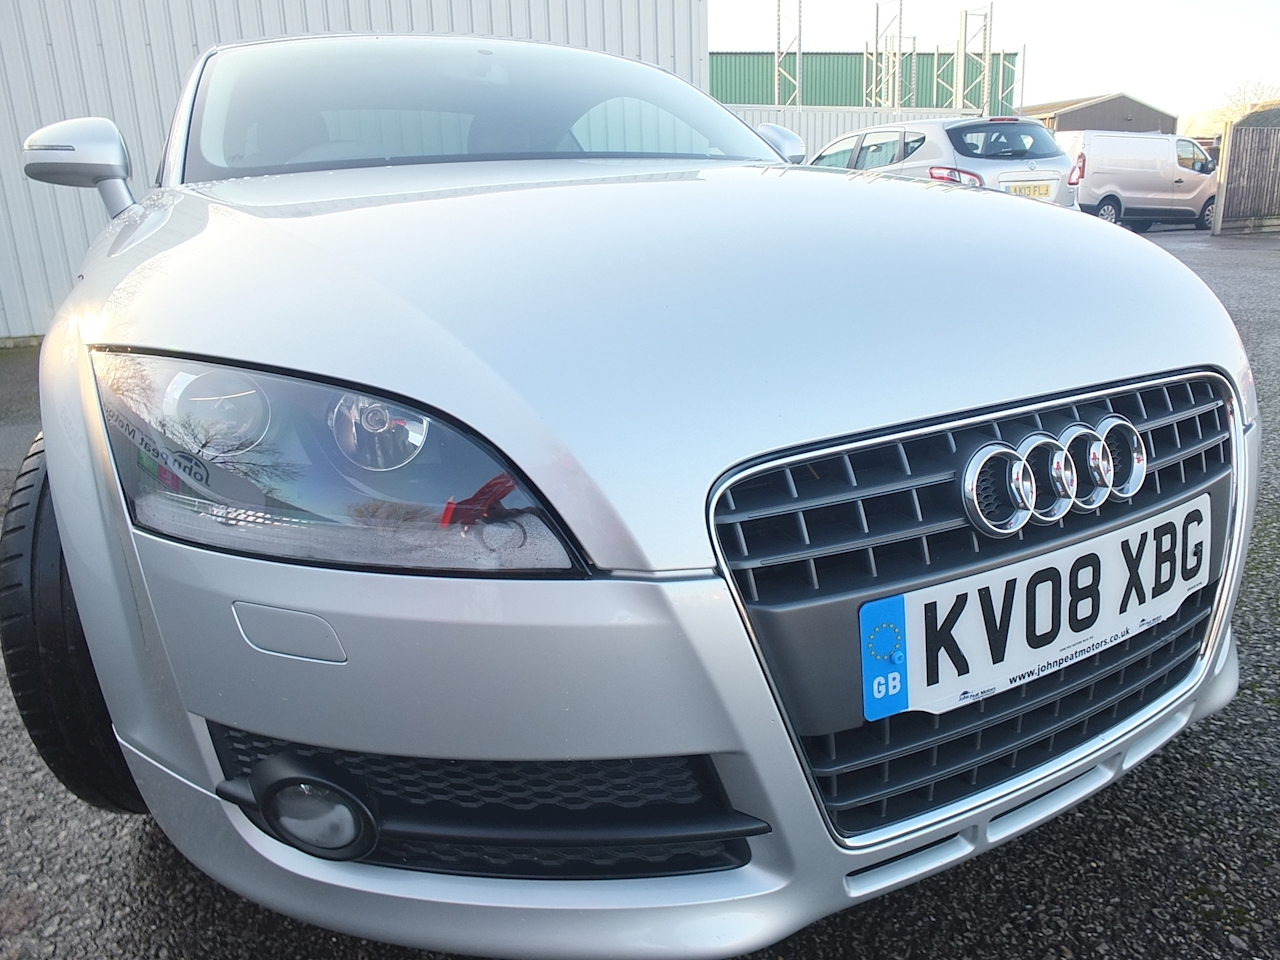 Tt Tfsi Coupe 2.0 Manual Petrol